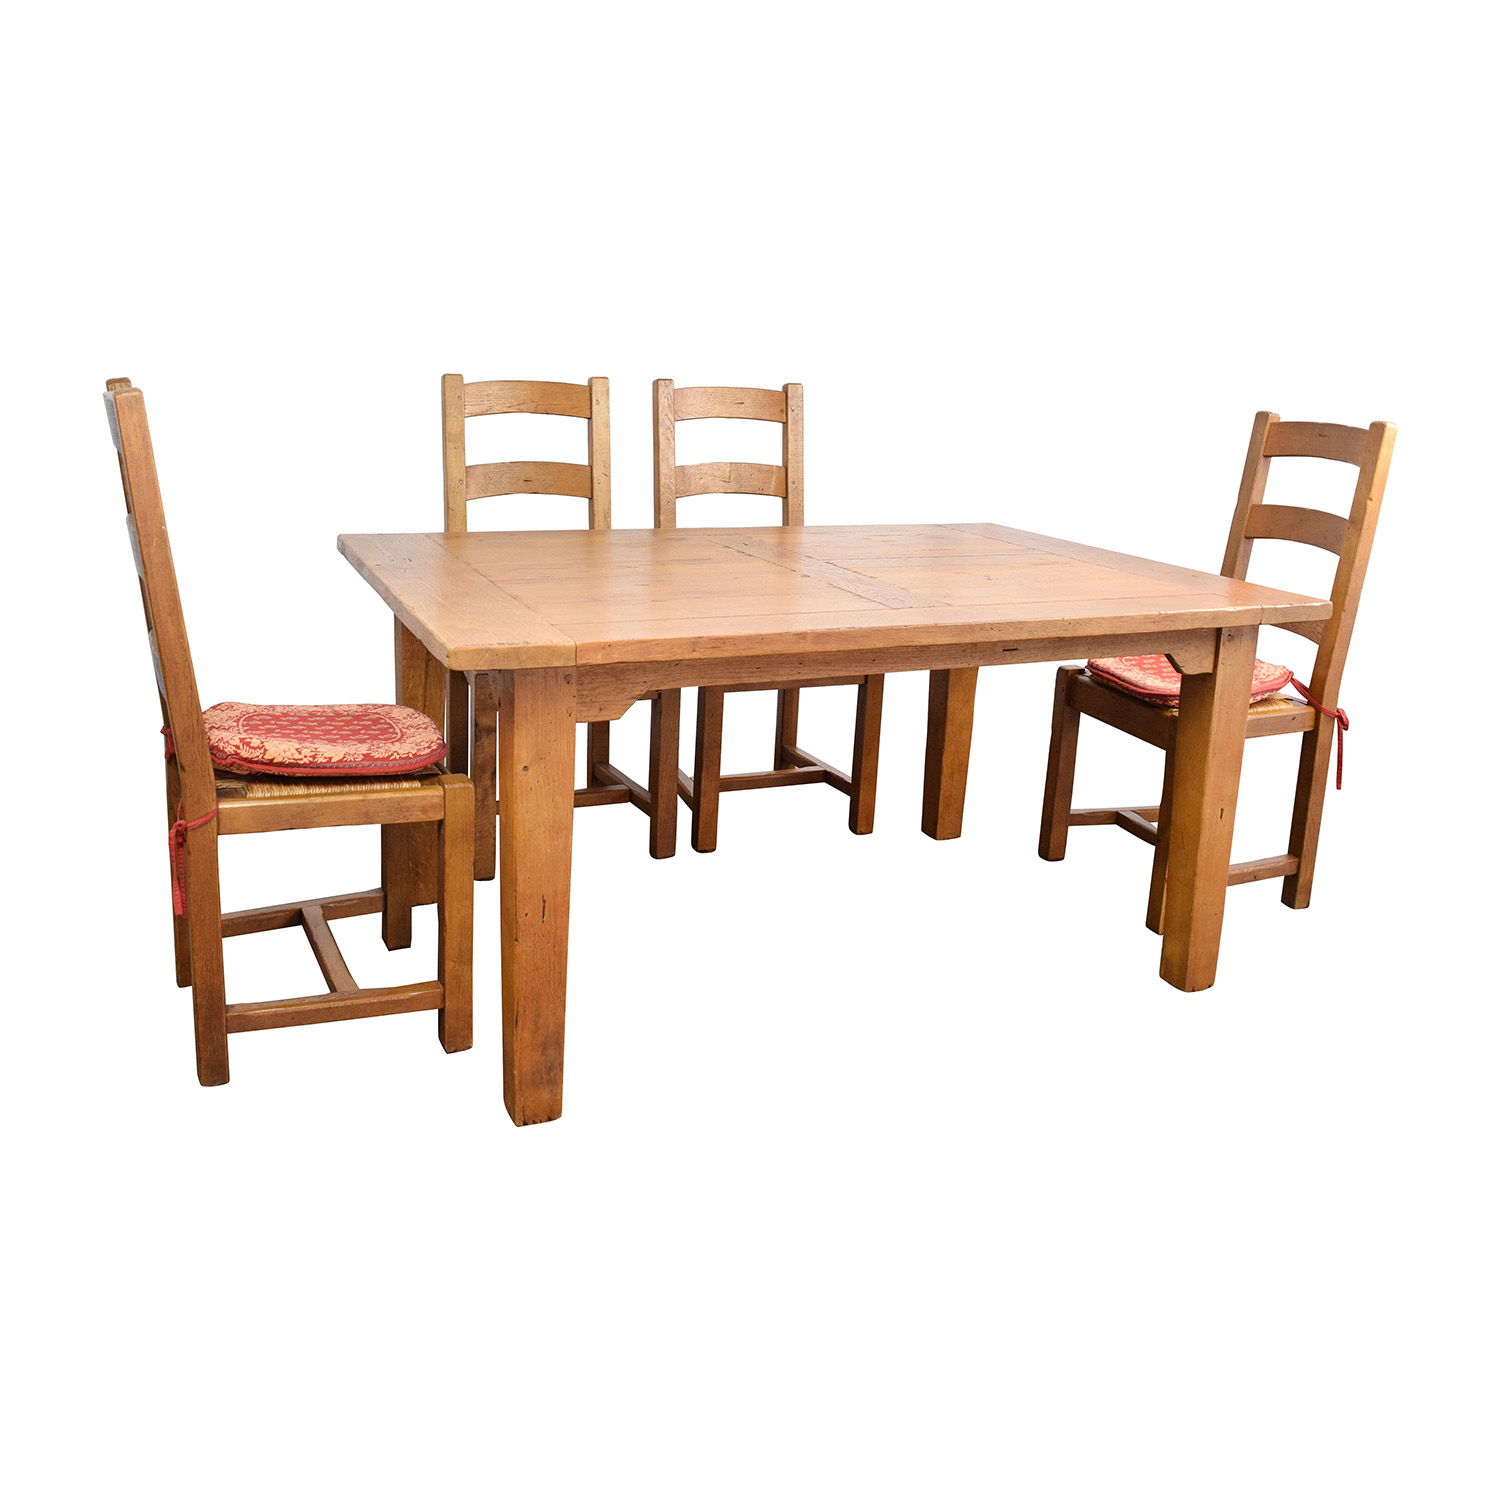 Buy Crate And Barrel French Farm Dining Set Online